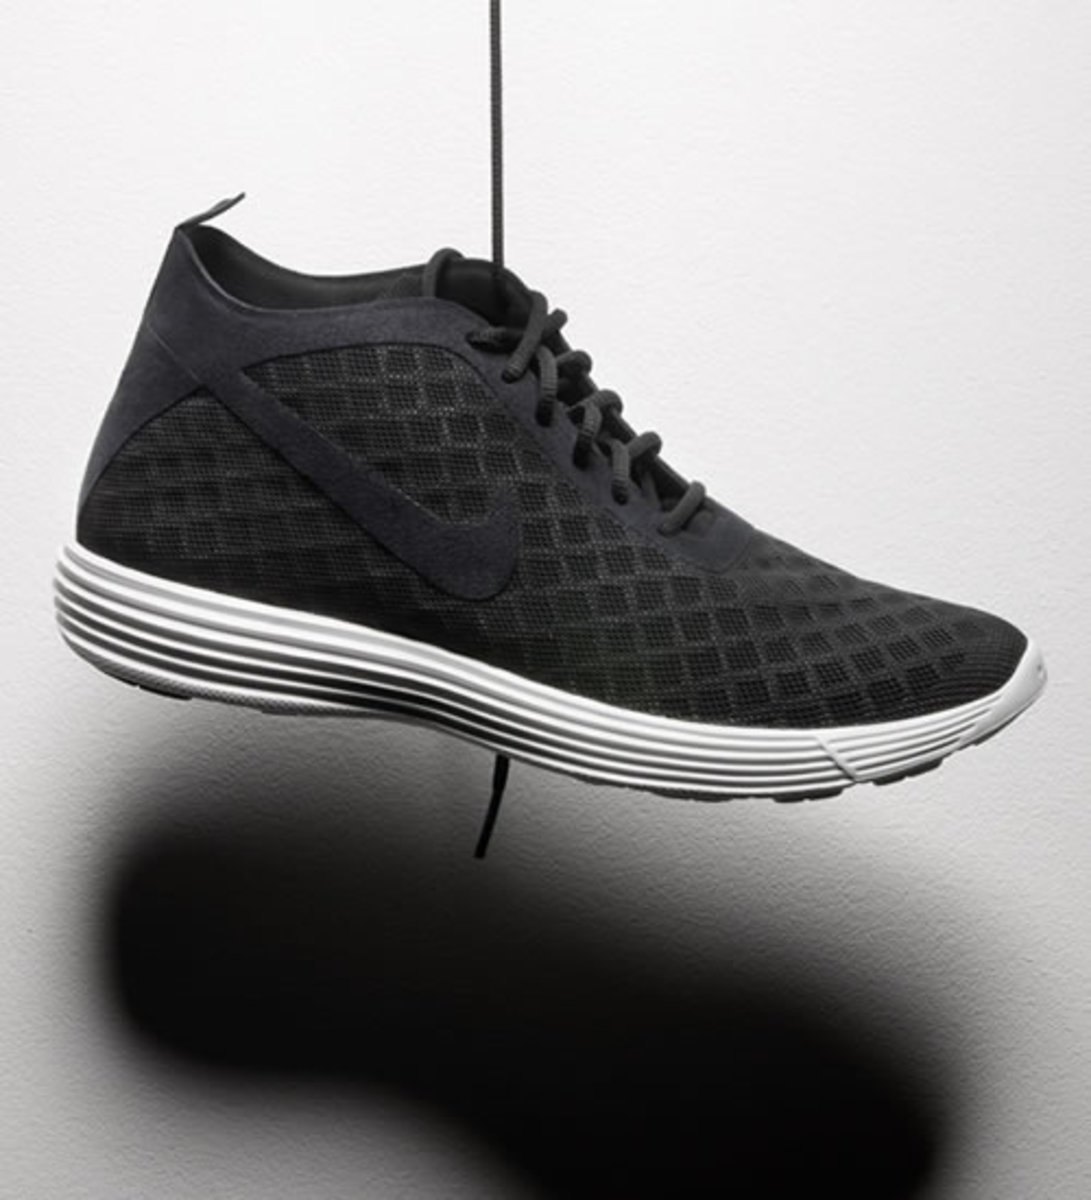 0087b8547 Nike s designers have taken their lightweight Torch technology and combined  it with the cushioning of a LunarLite foam sole to create the LunarLite  Rejuvn8 ...